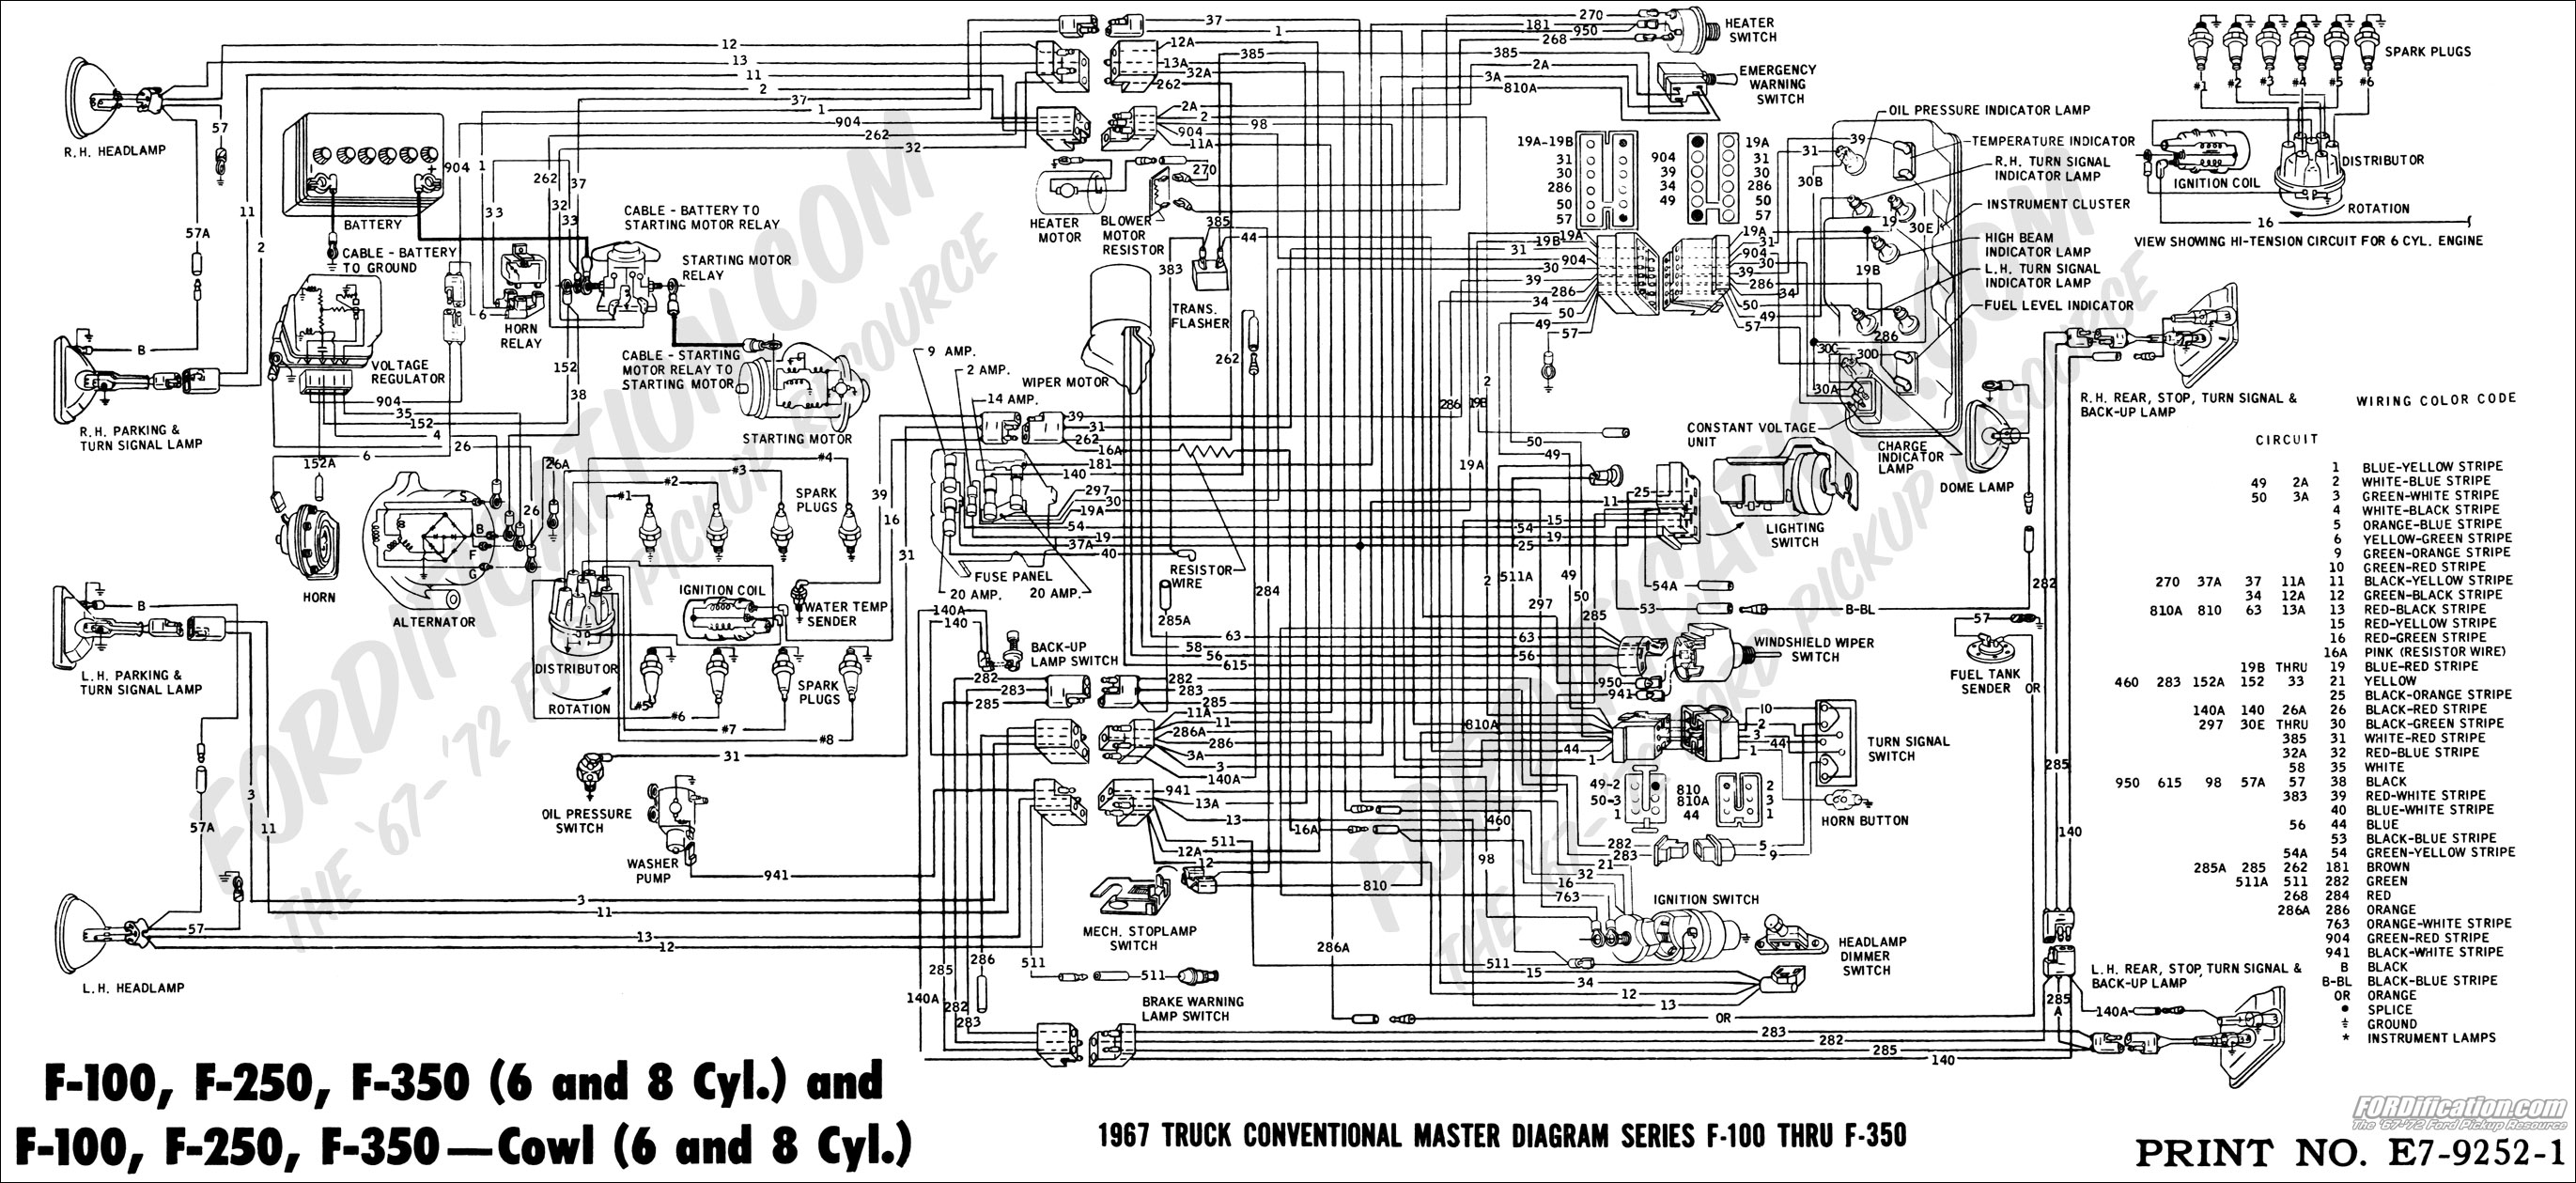 Ford F700 Wiring Diagrams - Wiring Diagram •